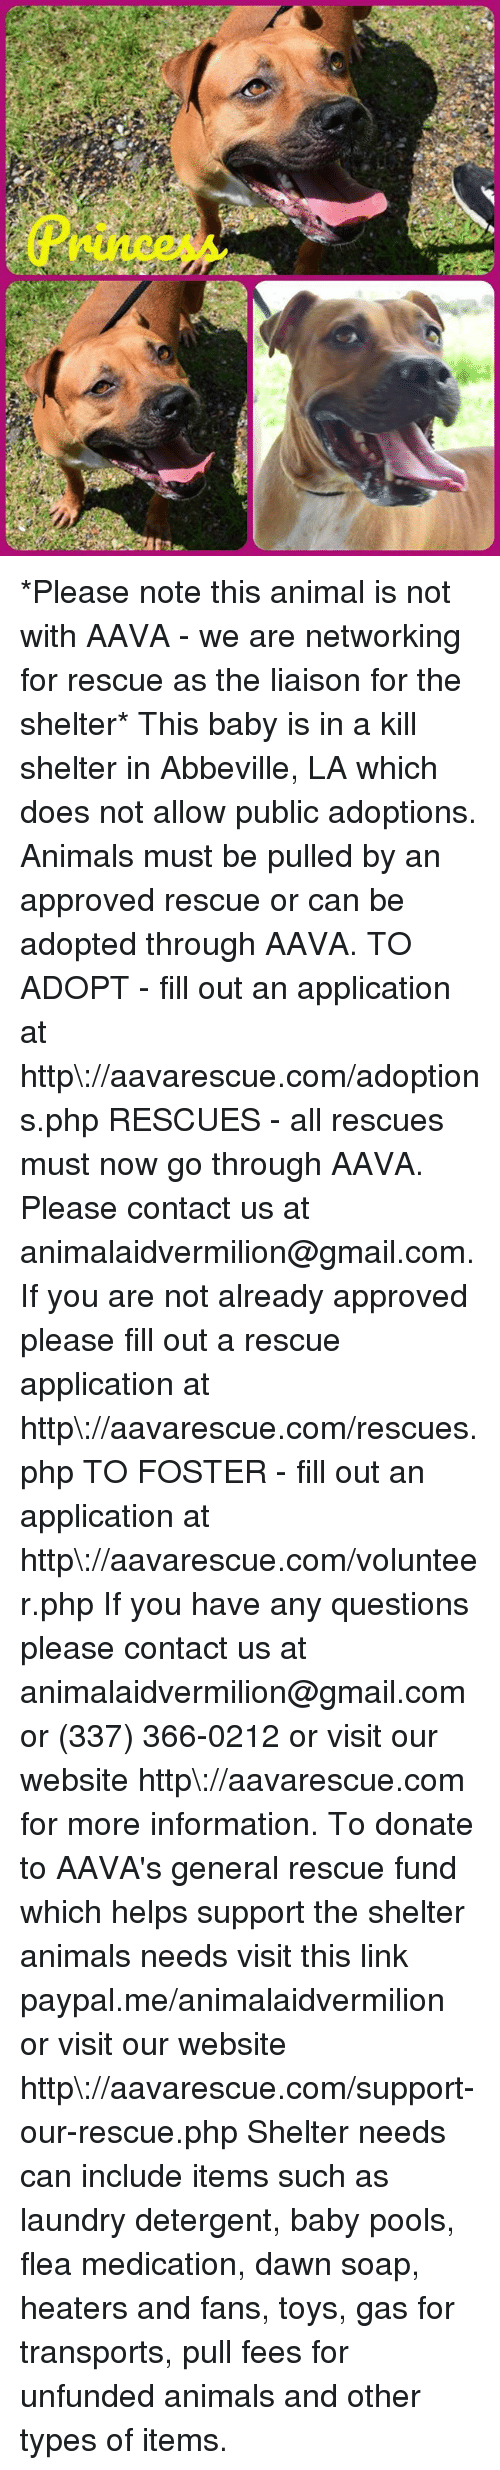 Animals, Laundry, and Memes: *Please note this animal is not with AAVA - we are networking for rescue as the liaison for the shelter* This baby is in a kill shelter in Abbeville, LA which does not allow public adoptions. Animals must be pulled by an approved rescue or can be adopted through AAVA.  TO ADOPT - fill out an application at http\://aavarescue.com/adoptions.php  RESCUES - all rescues must now go through AAVA. Please contact us at animalaidvermilion@gmail.com. If you are not already approved please fill out a rescue application at http\://aavarescue.com/rescues.php  TO FOSTER - fill out an application at http\://aavarescue.com/volunteer.php  If you have any questions please contact us at animalaidvermilion@gmail.com or (337) 366-0212 or visit our website http\://aavarescue.com for more information.  To donate to AAVA's general rescue fund which helps support the shelter animals needs visit this link paypal.me/animalaidvermilion or visit our website http\://aavarescue.com/support-our-rescue.php Shelter needs can include items such as laundry detergent, baby pools, flea medication, dawn soap, heaters and fans, toys, gas for transports, pull fees for unfunded animals and other types of items.